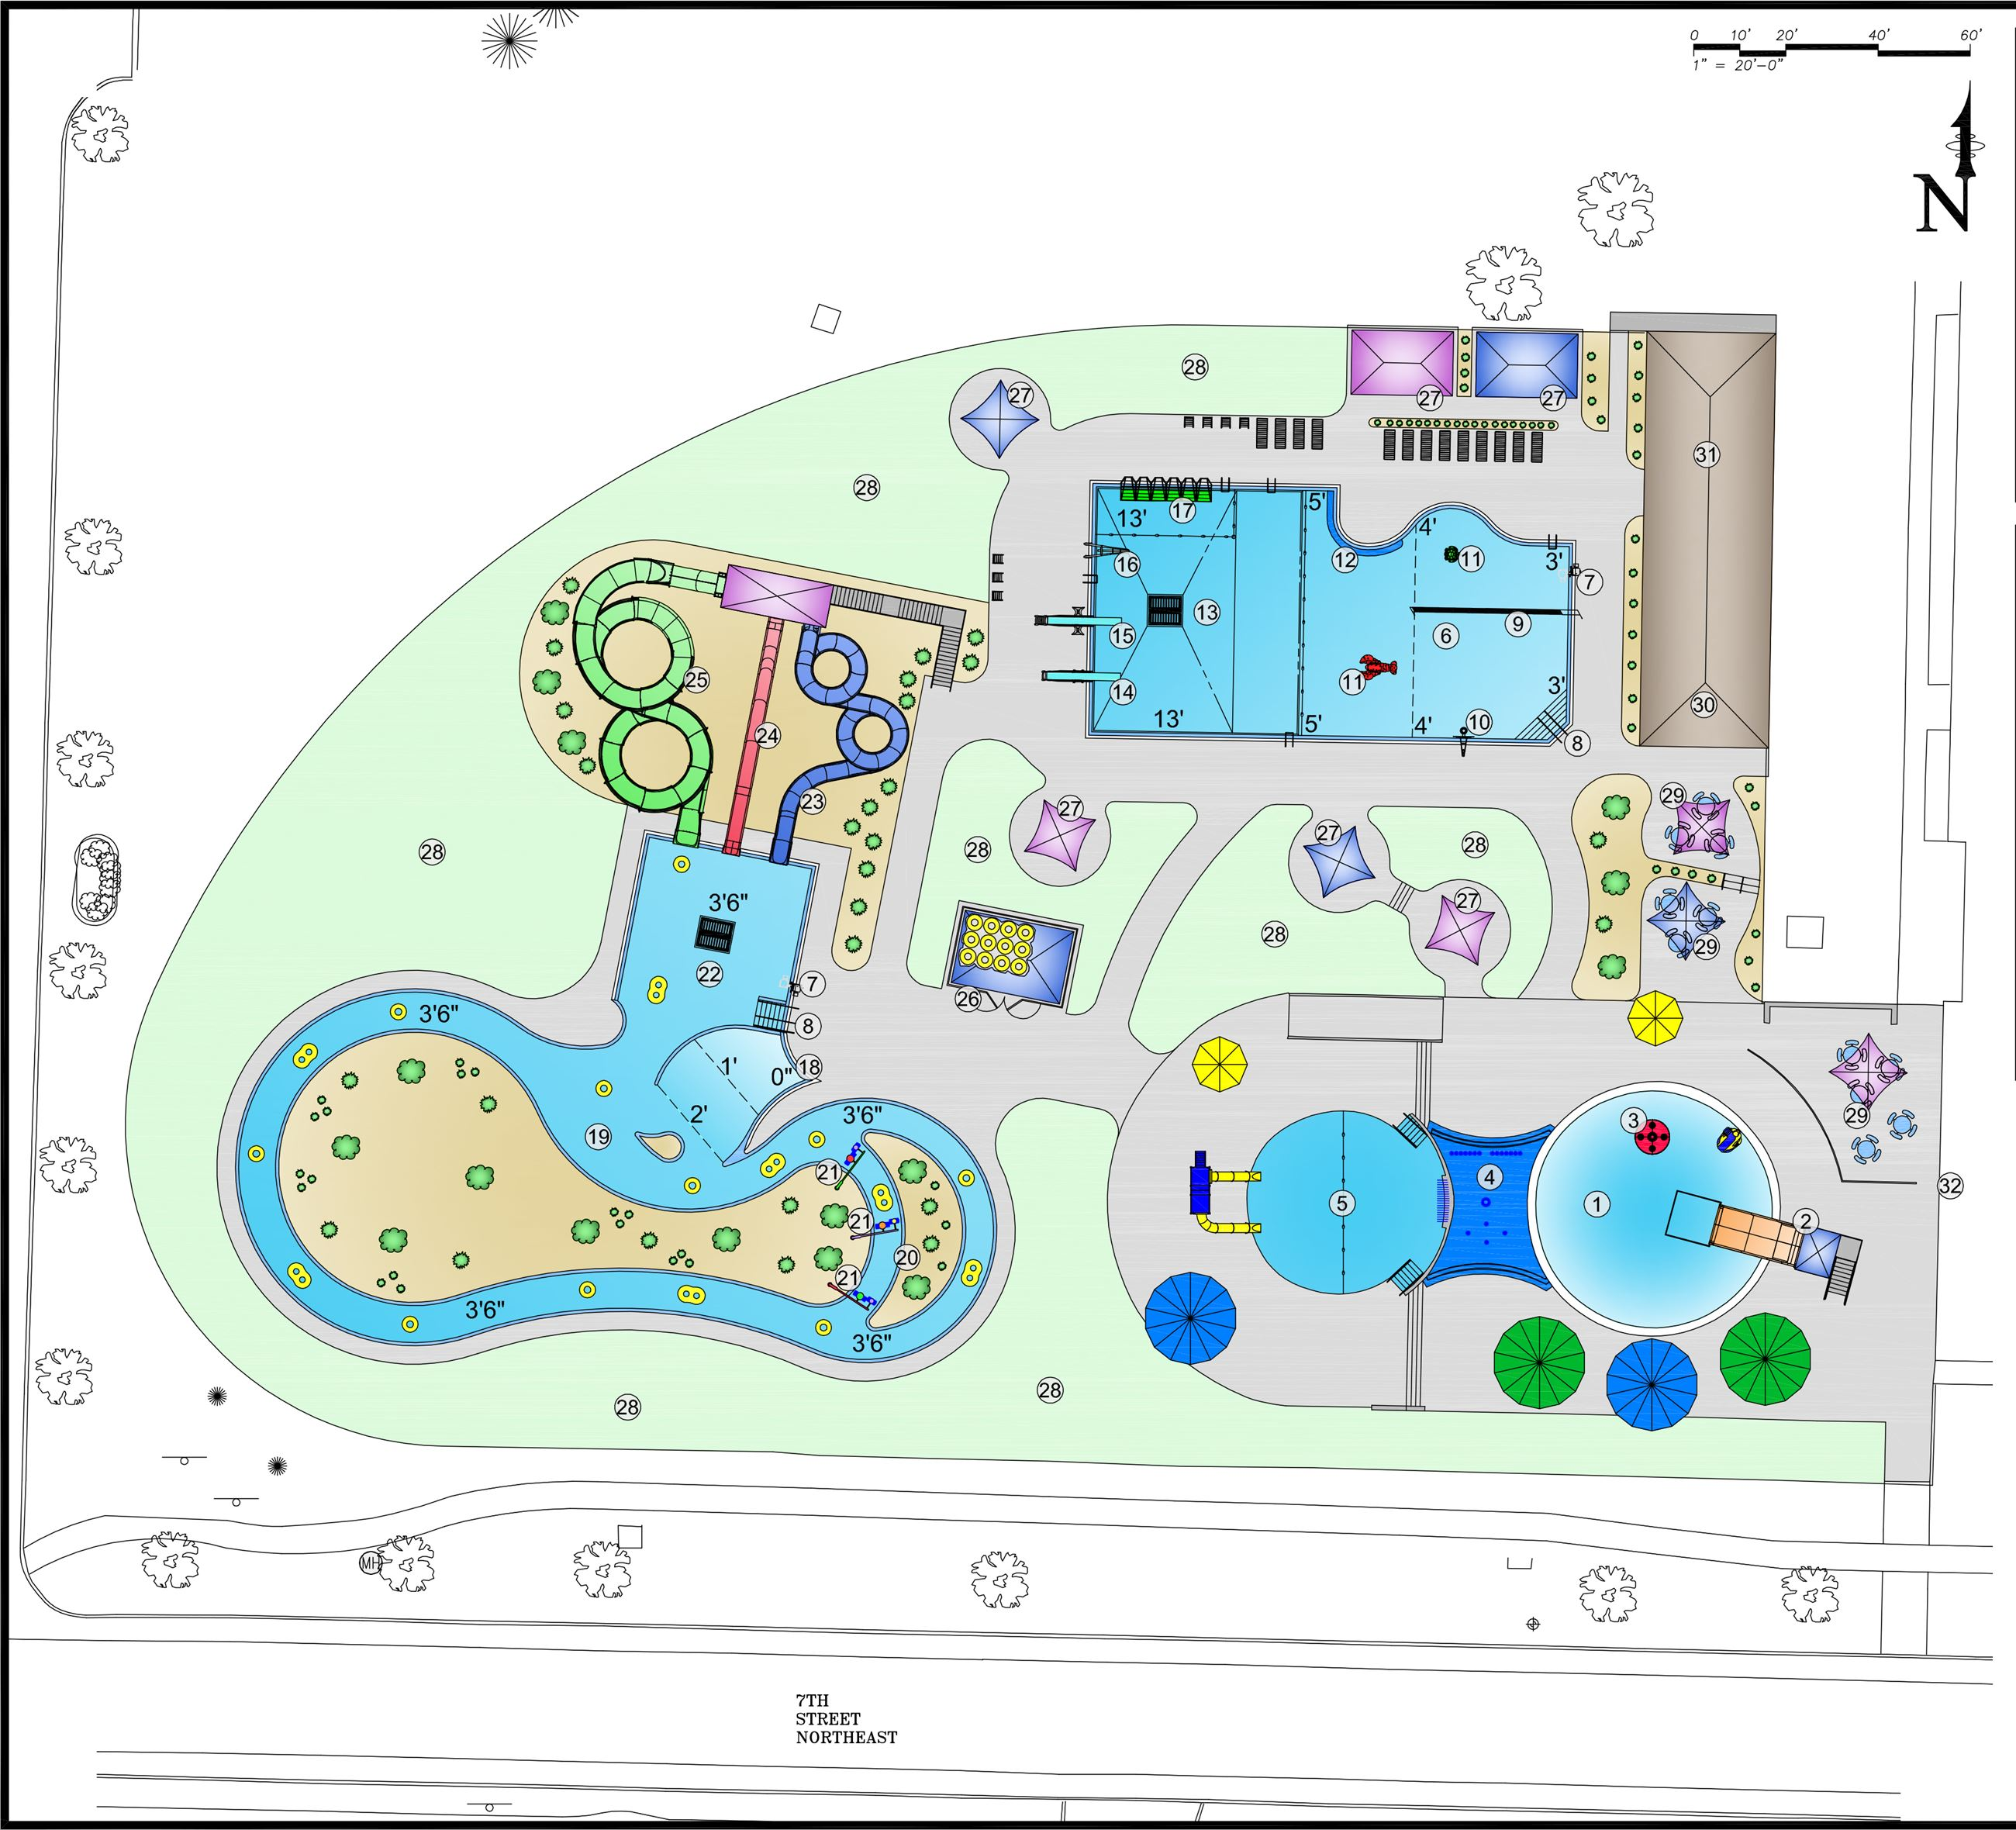 Outdoor aquatic center concept